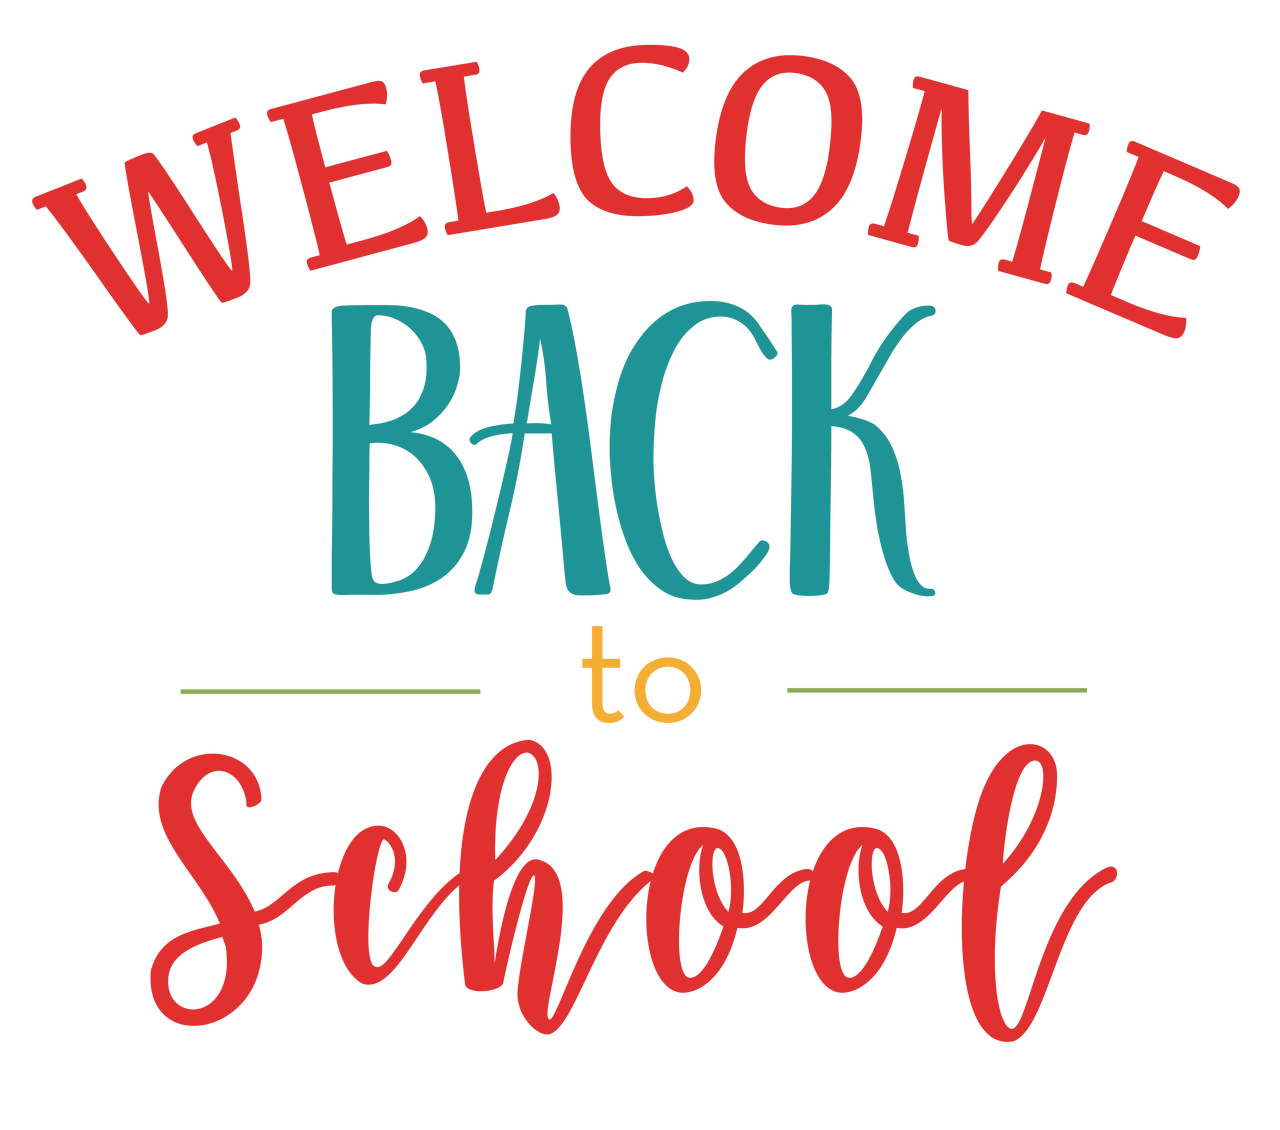 Welcome Back To School SVG Cut File